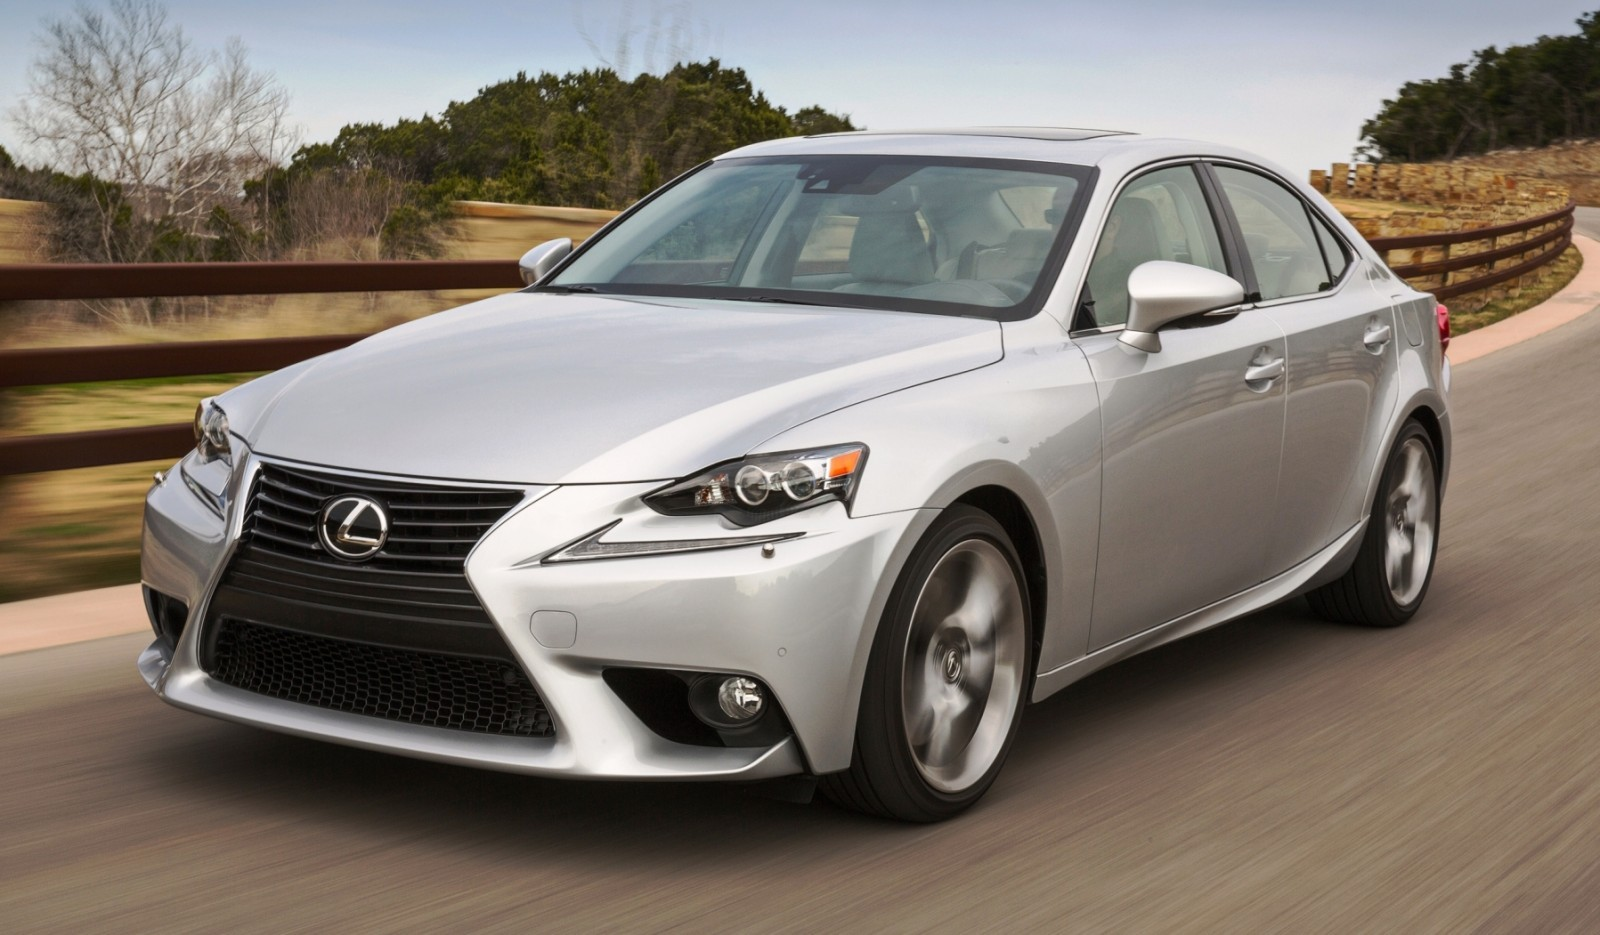 2014_Lexus_IS_350_025